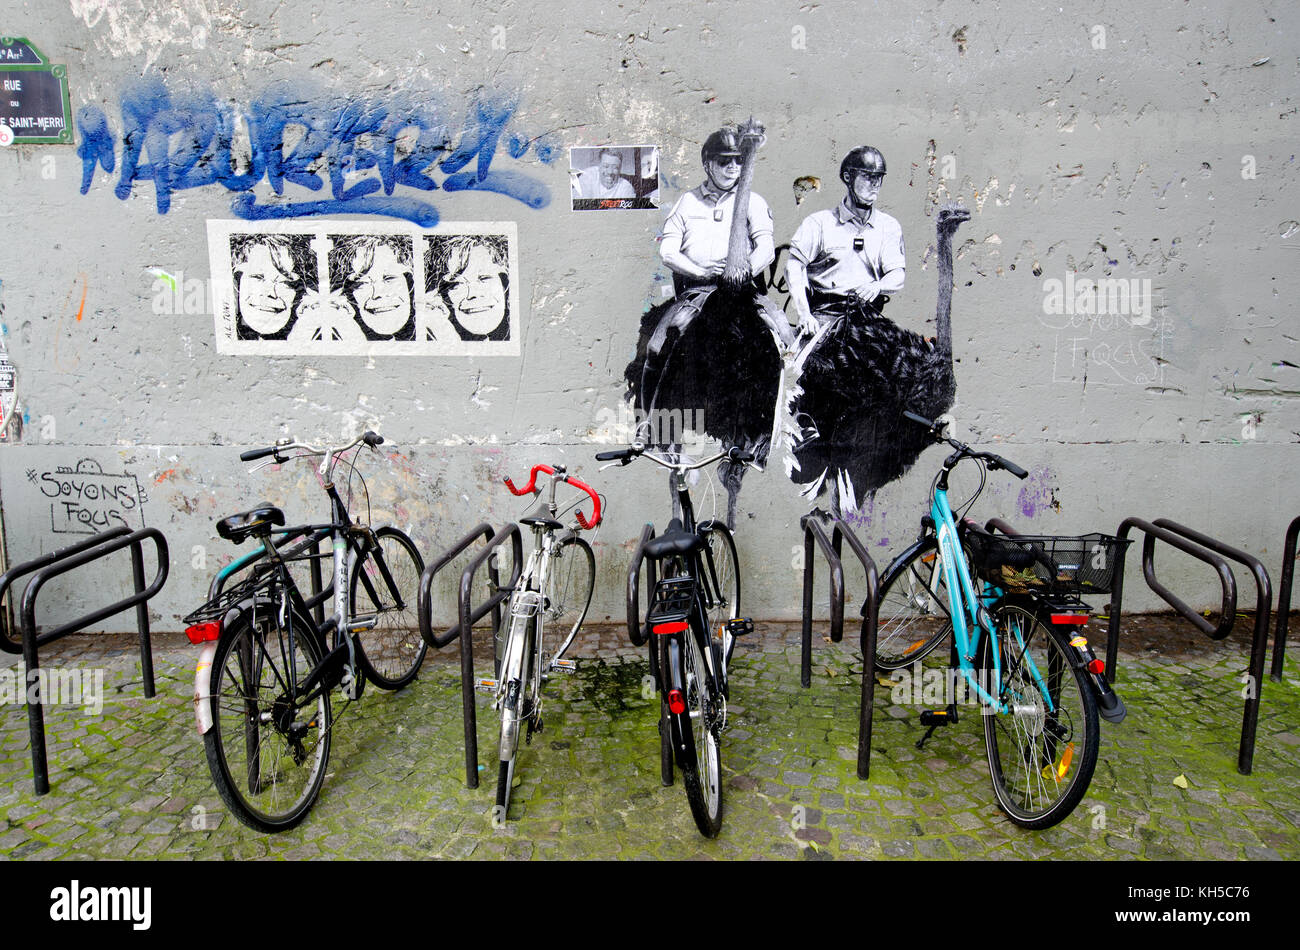 Graffiti Bicycle Bicycles Stock Photos Police Roadbike Toronto Greey Blue Mounted On Ostriches Rack Rue Du